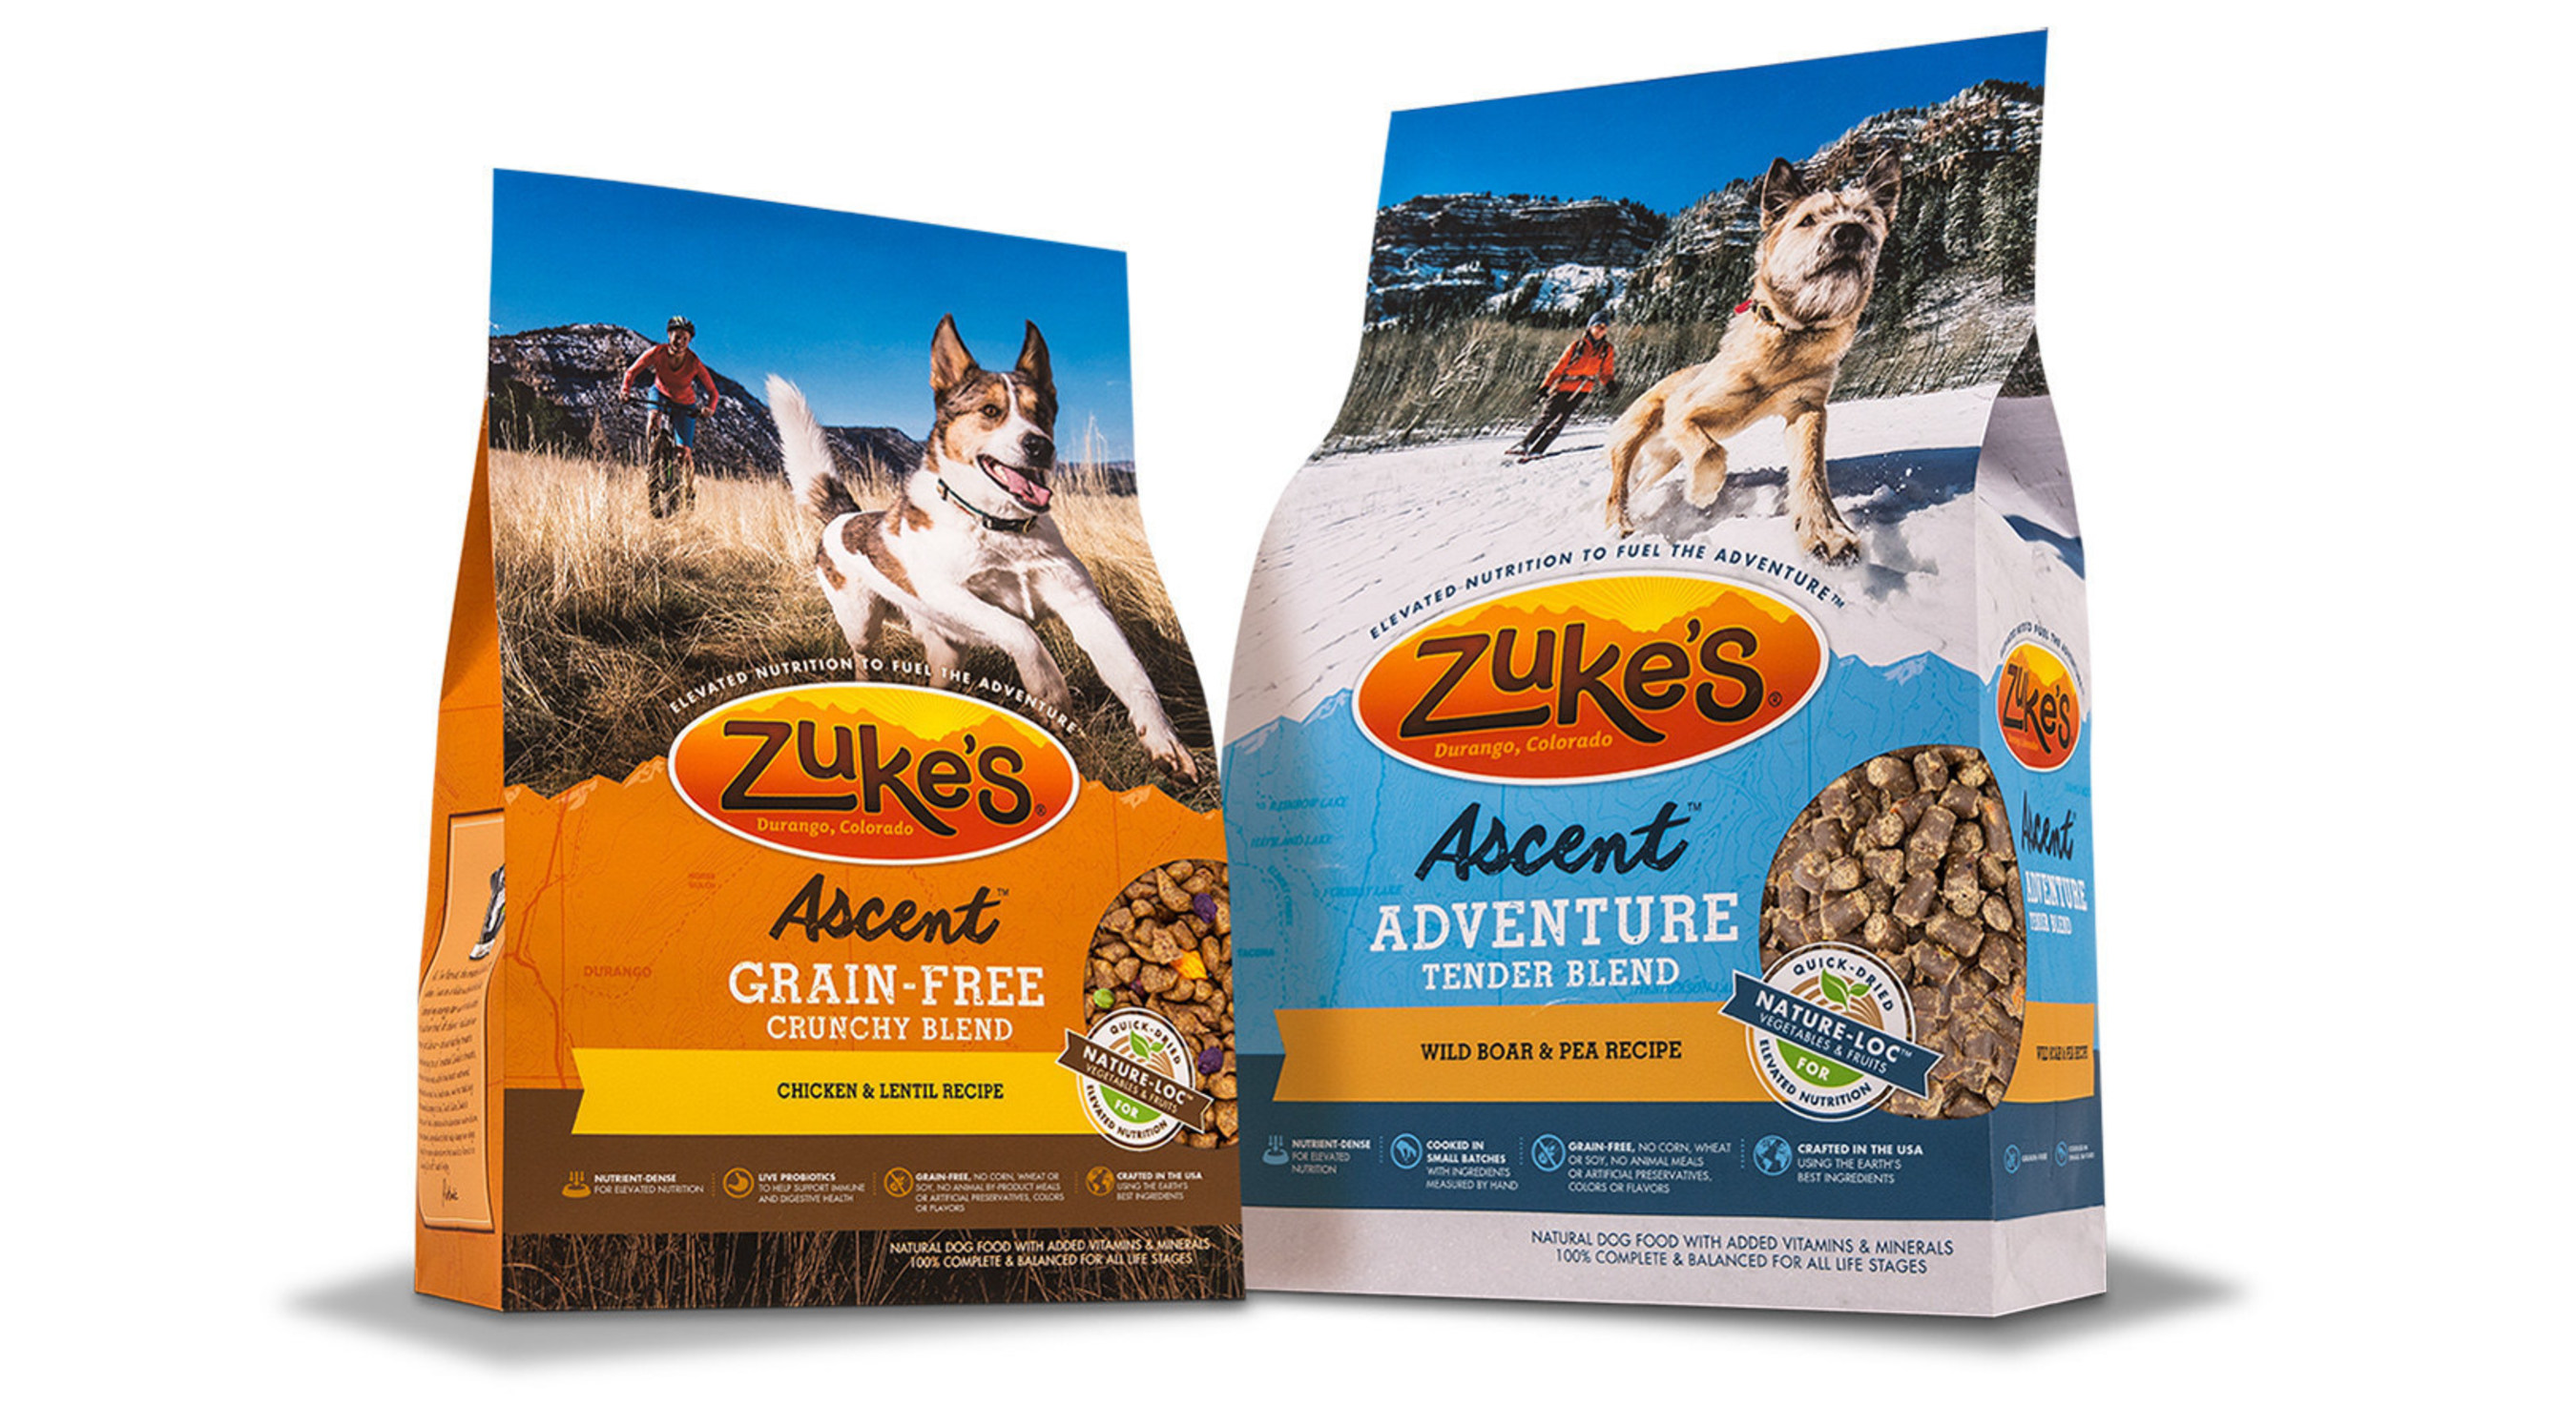 Zuke's(R) Ascent(TM) Natural Dog Food line features VELCRO(R) Brand's PRESS-LOK(R) closure on its packaging.